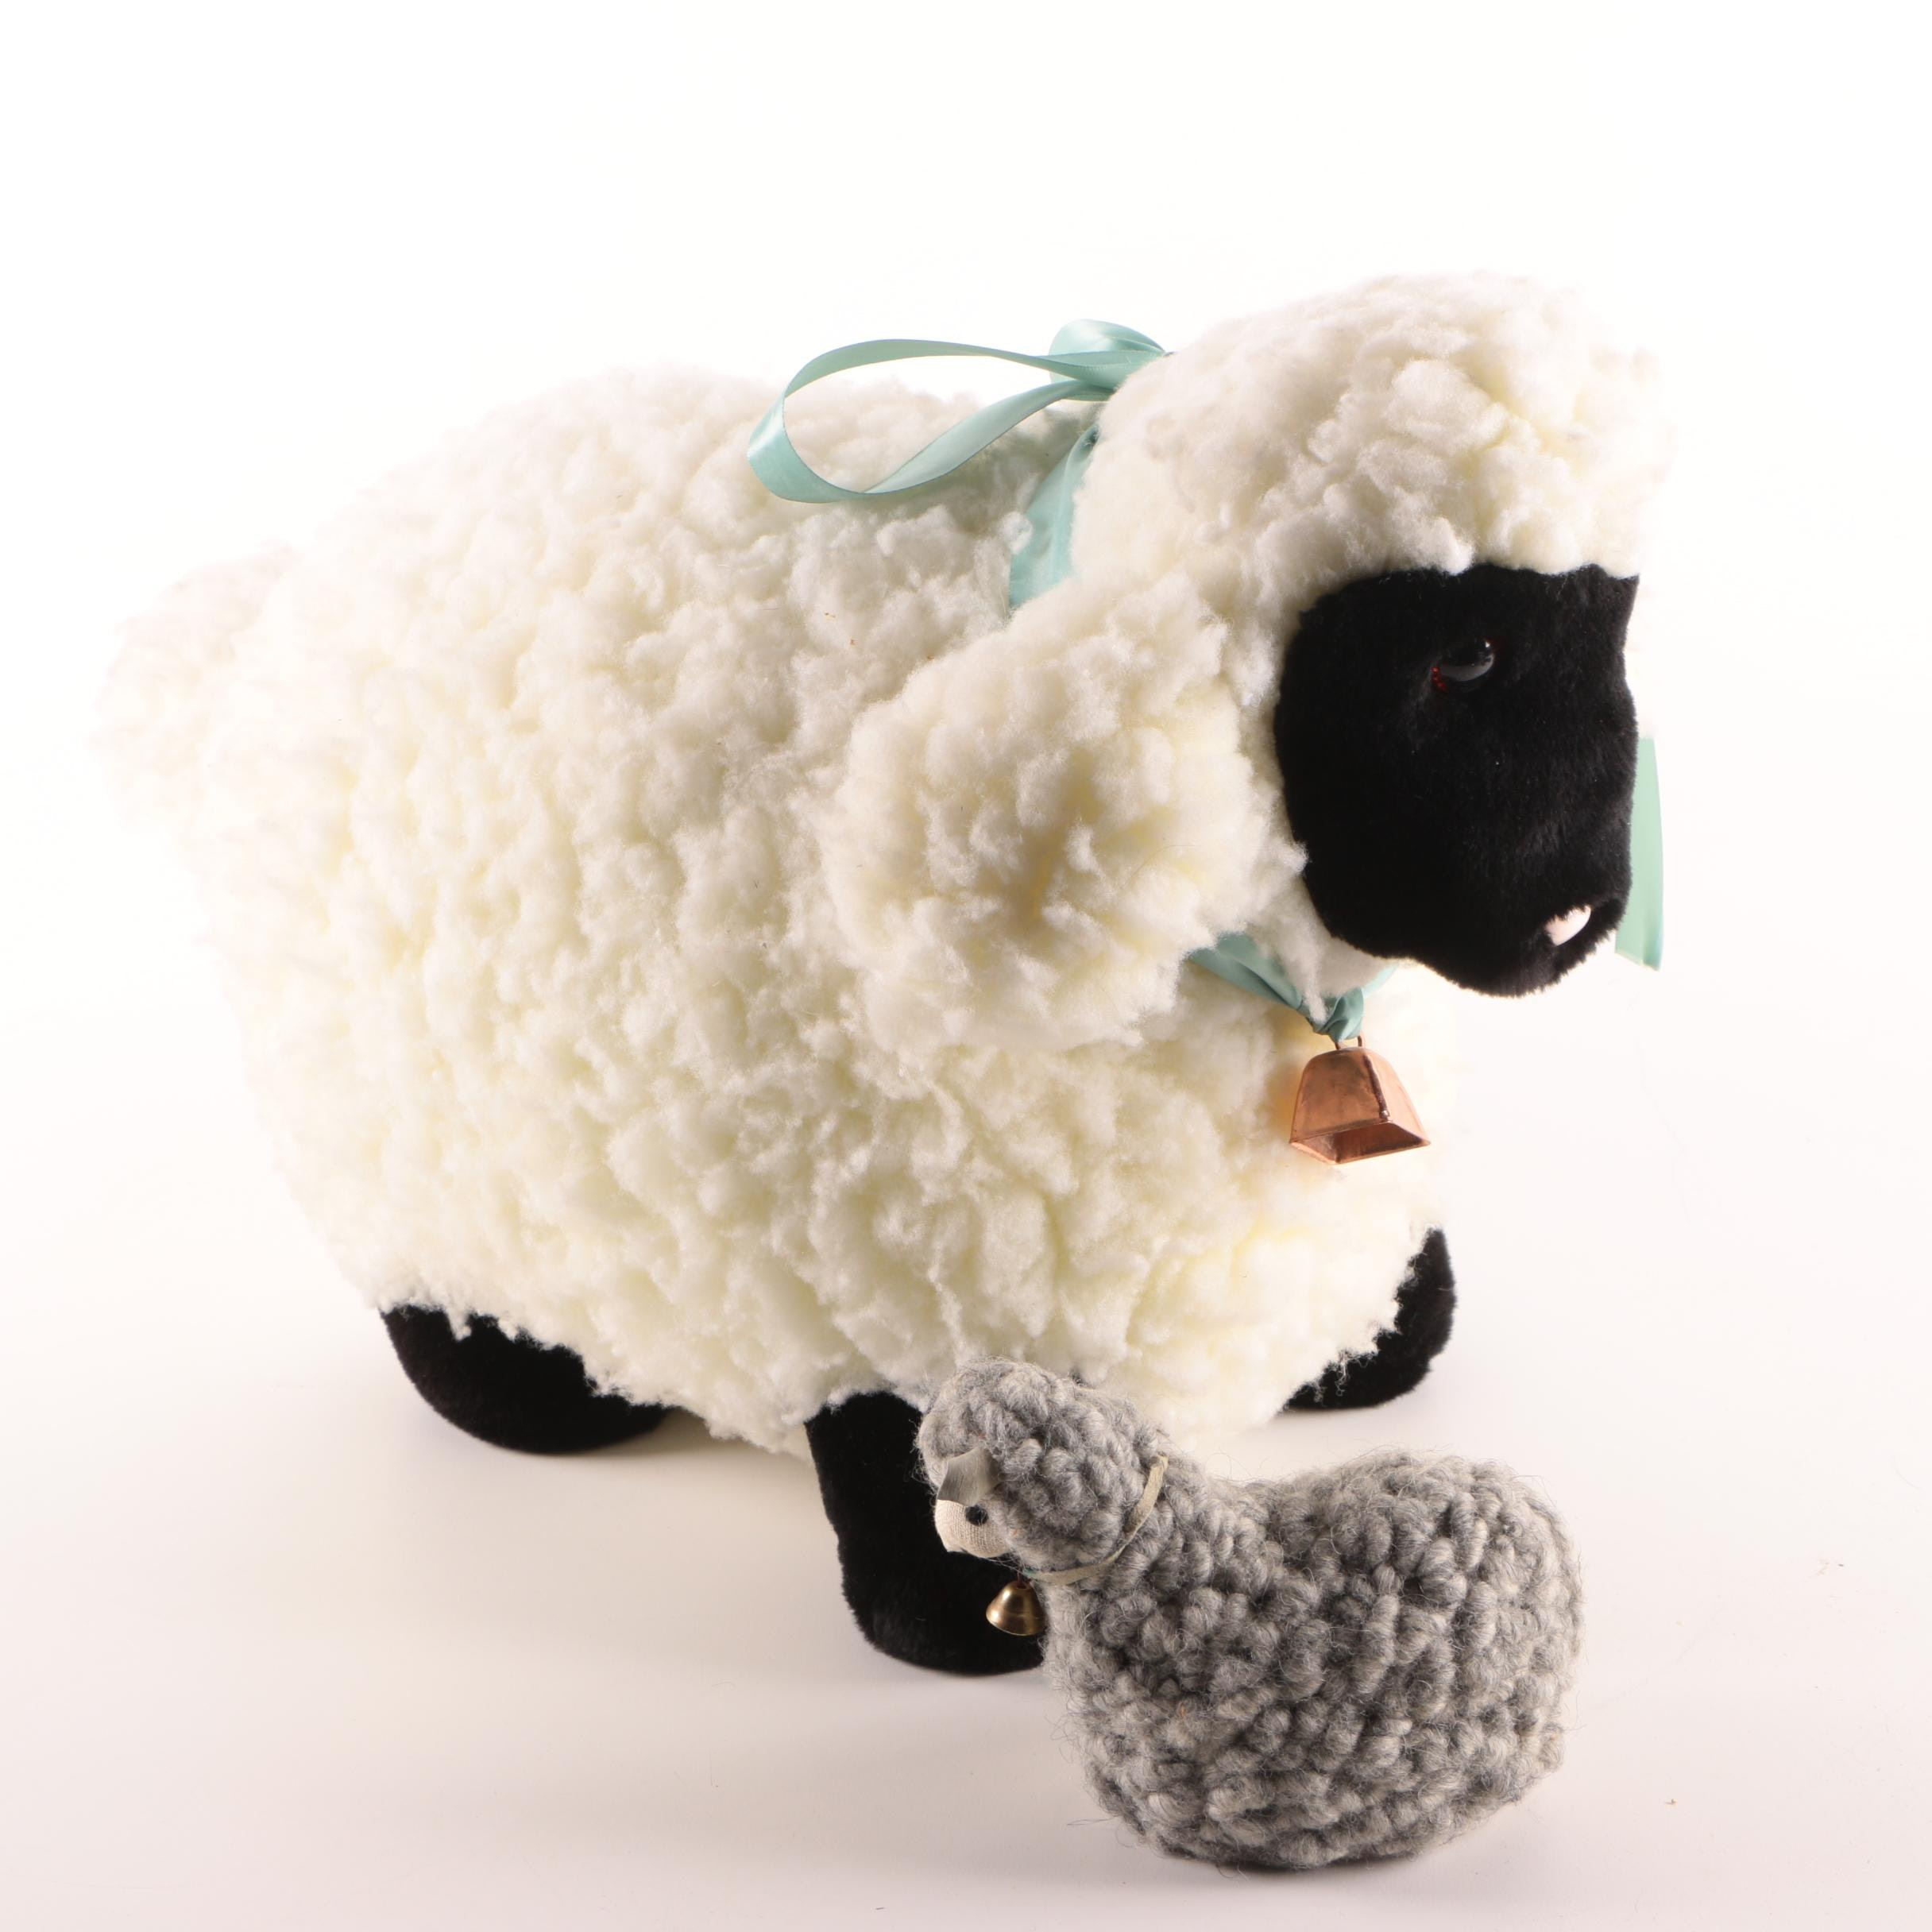 Plush Sheep Doll and Figurine